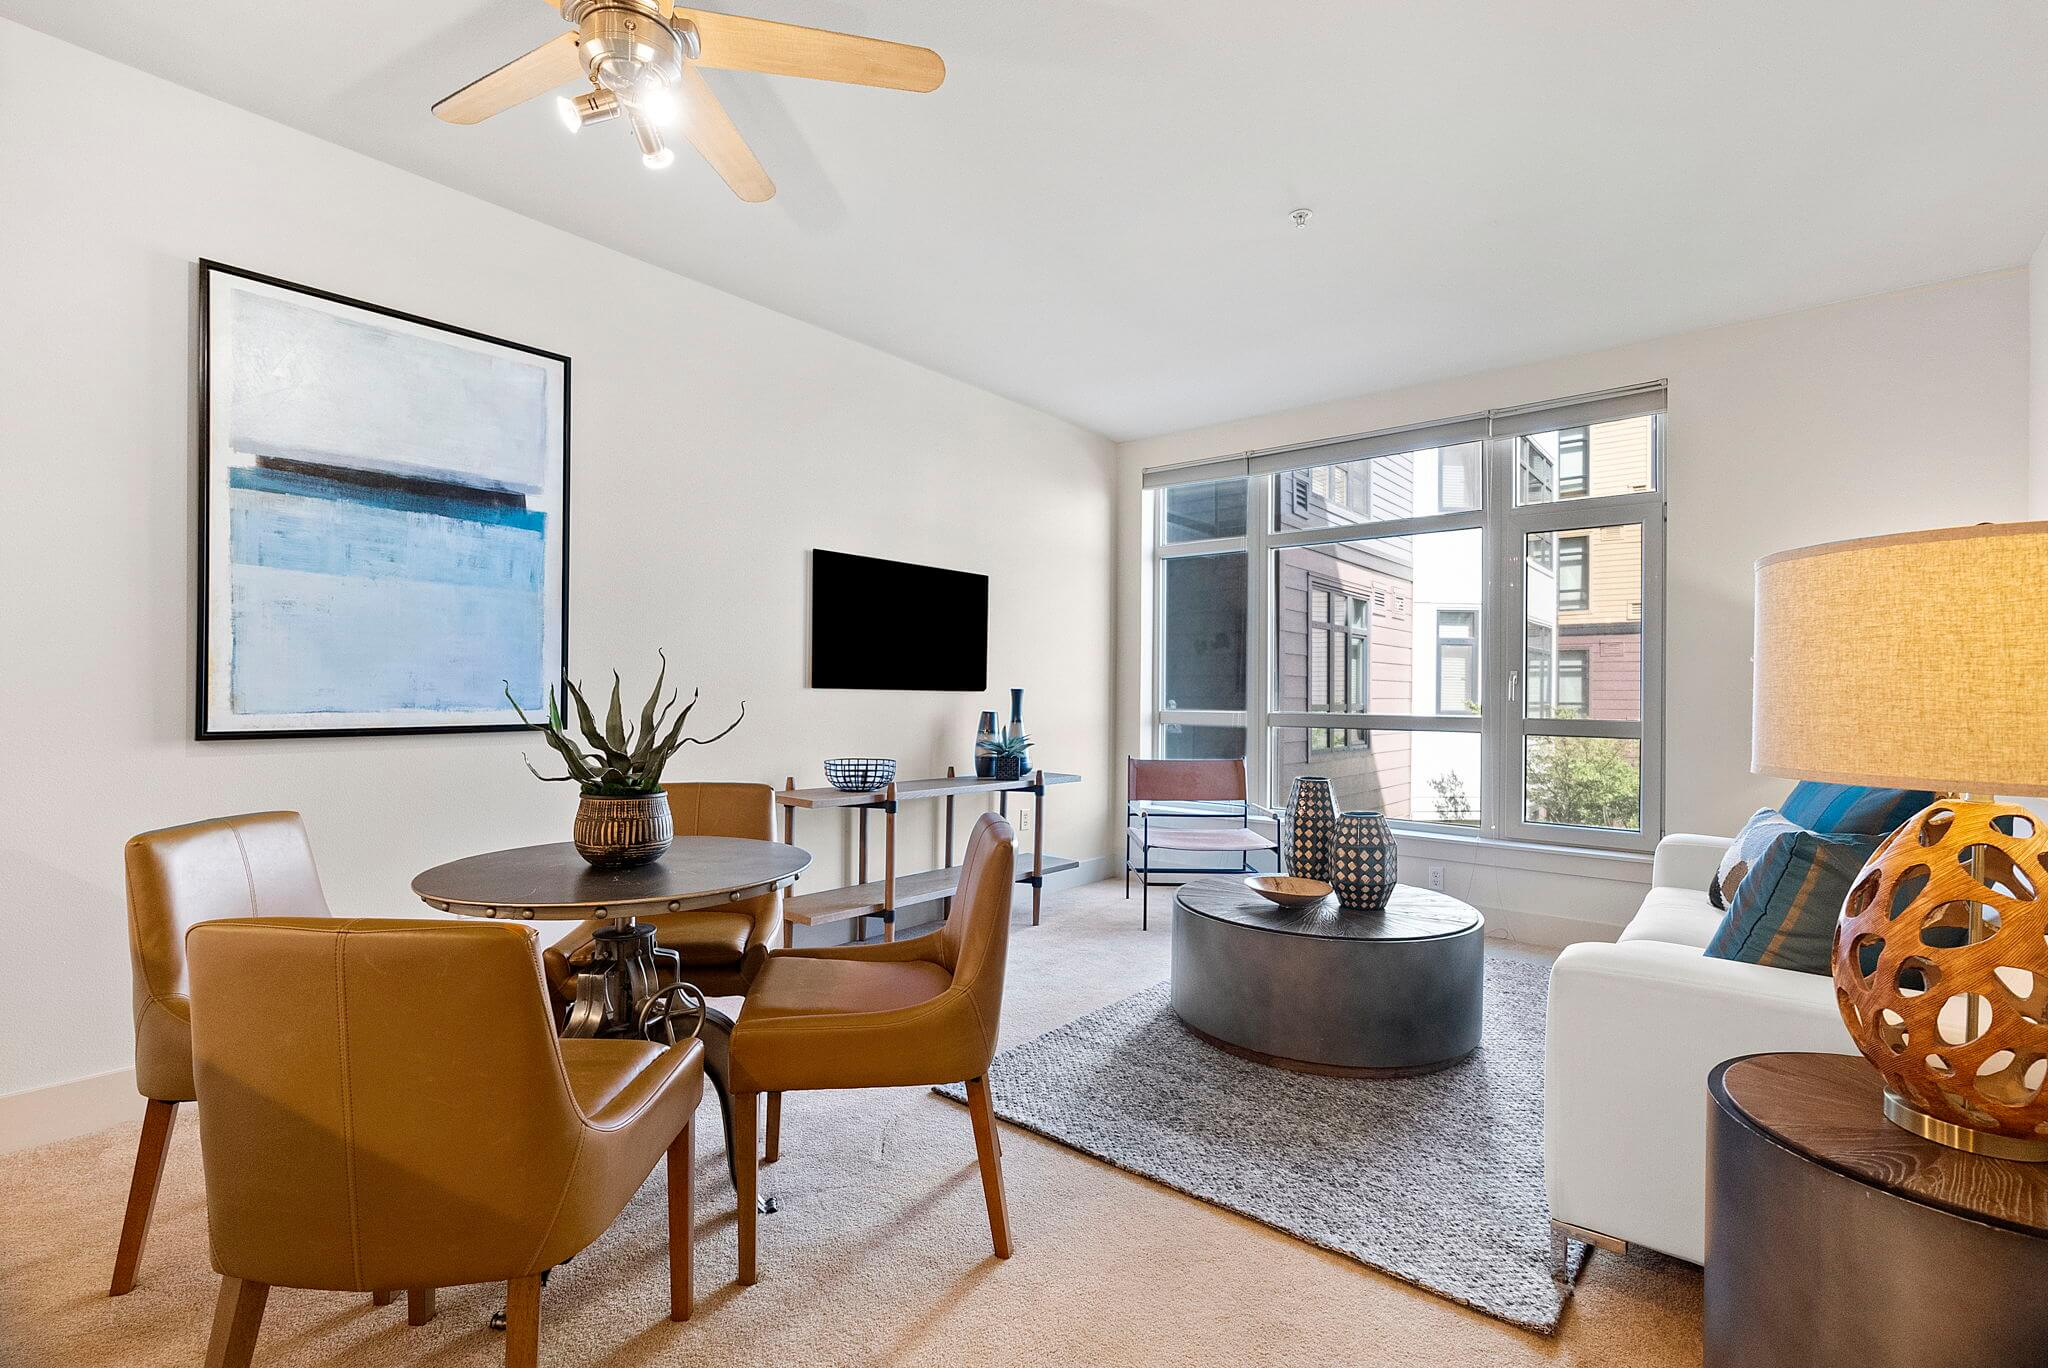 Ample space for living and dining